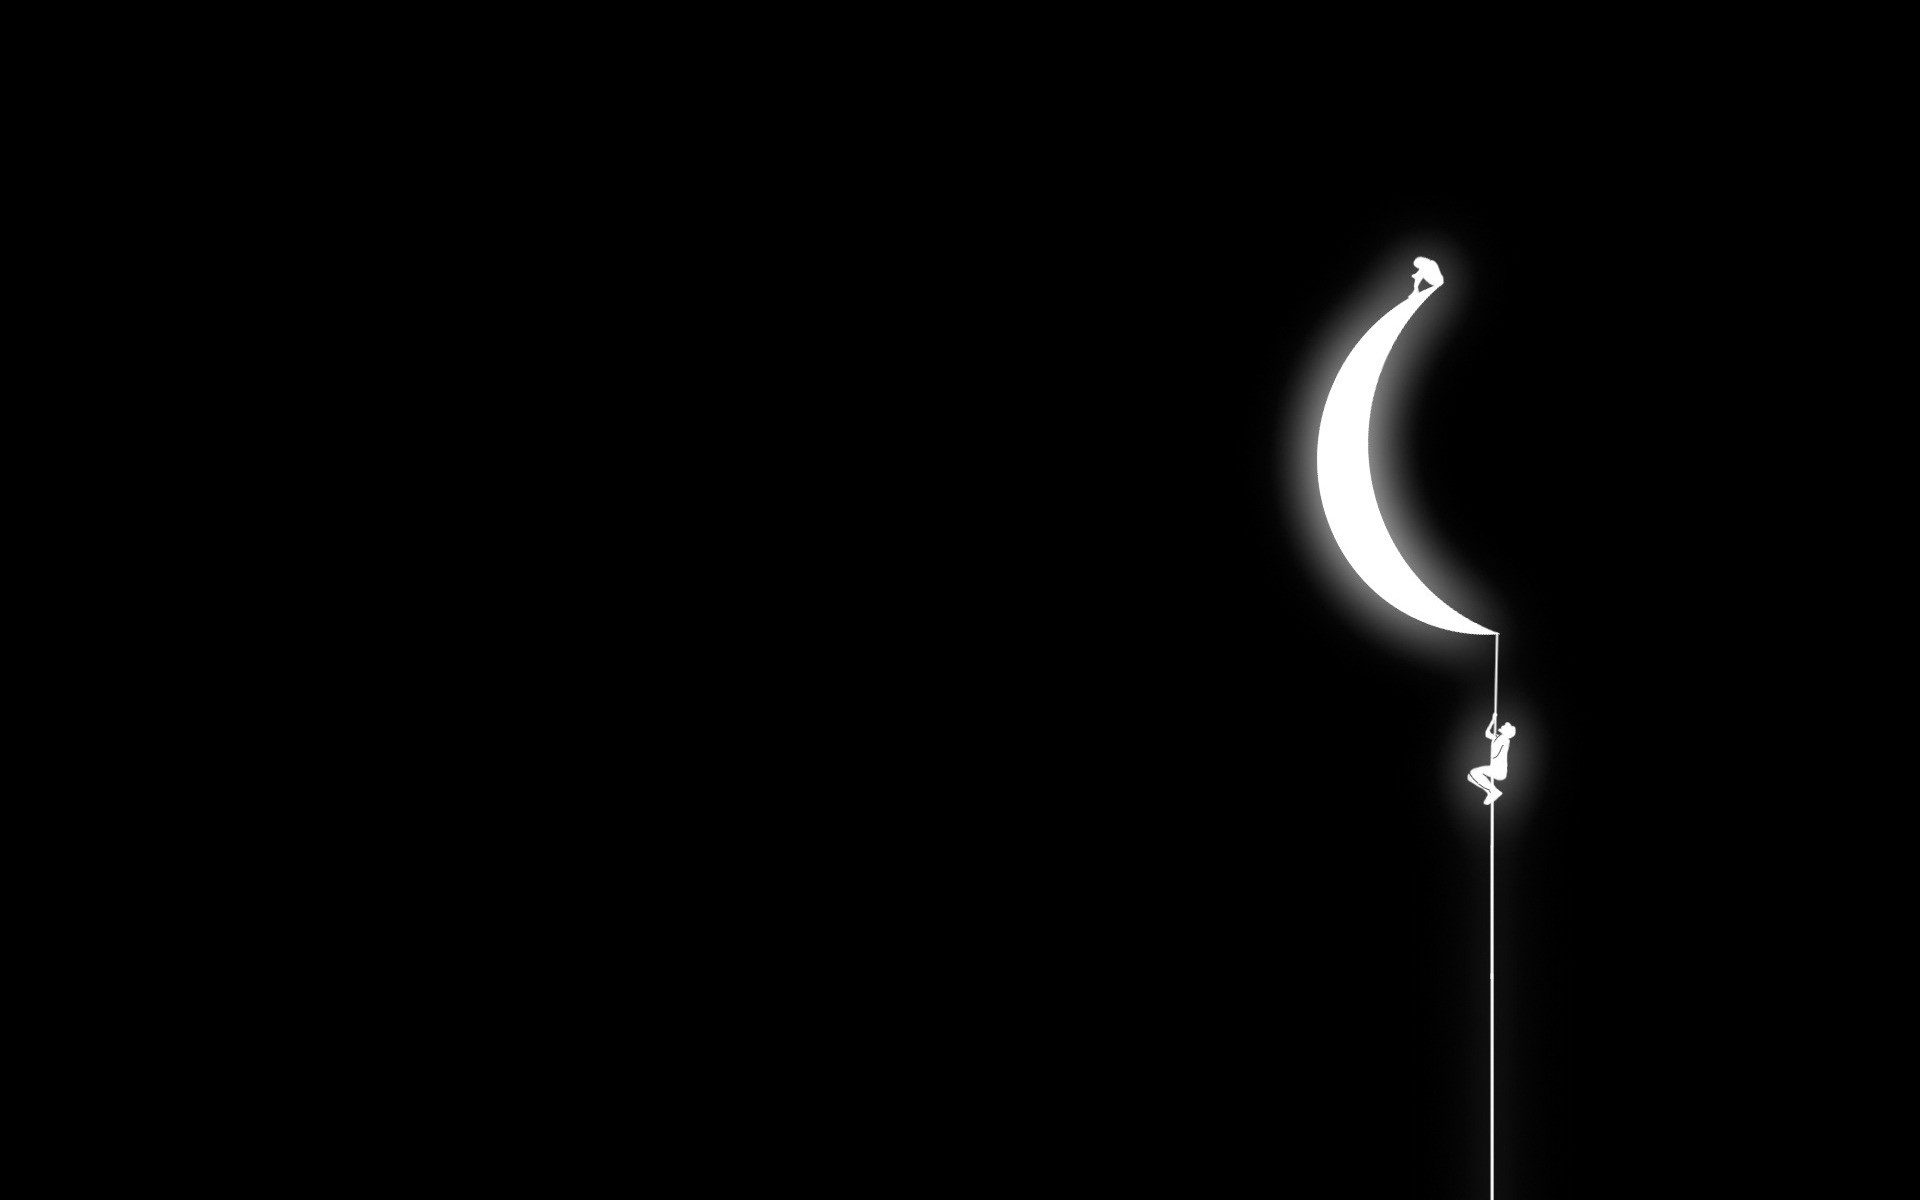 Black And White Moon Photos  13 Cool Hd Wallpaper